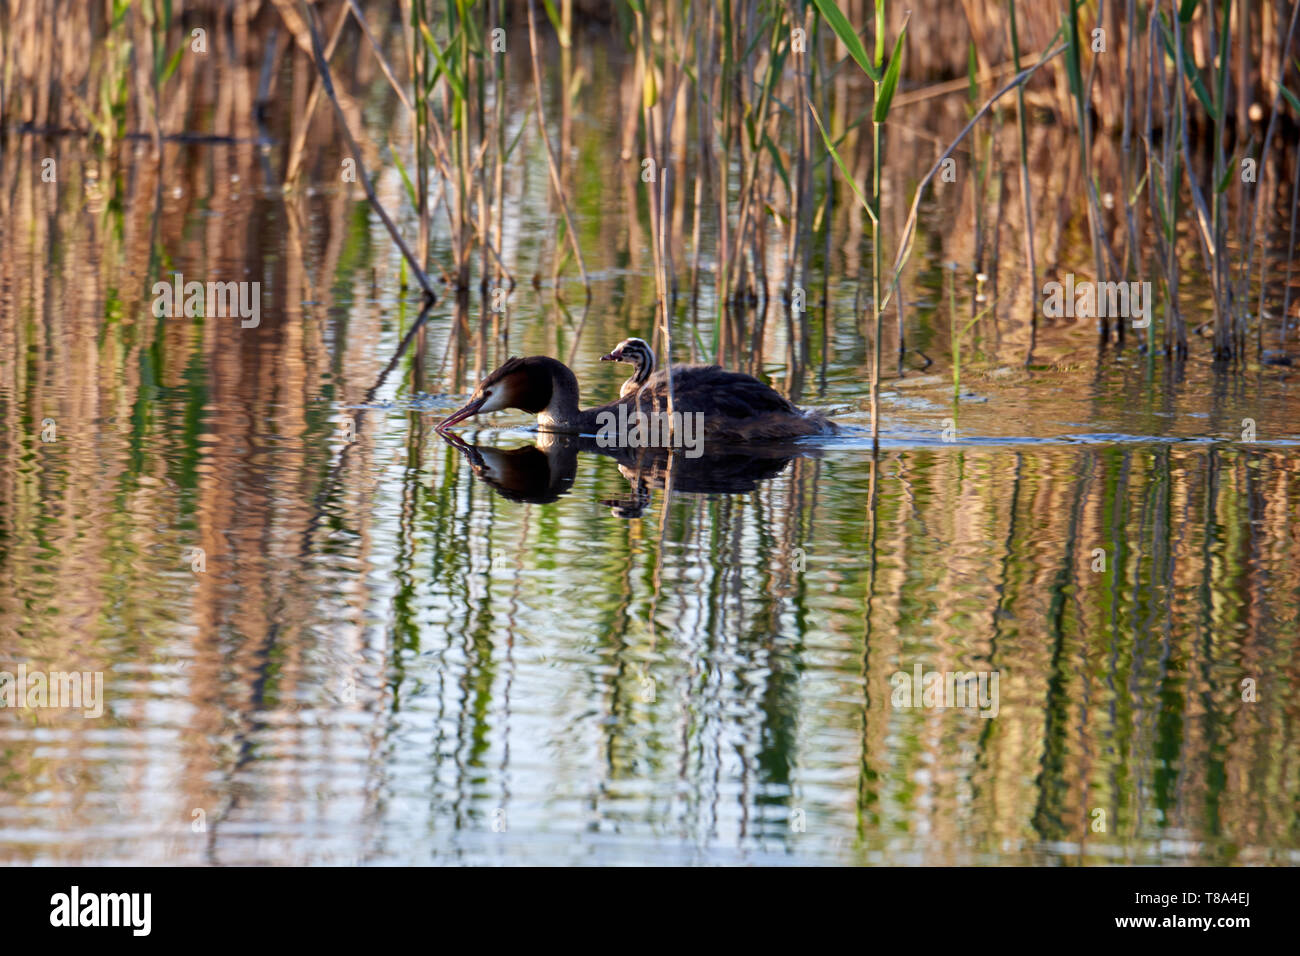 The great crested grebe swims with the chick on the back on the lake - Stock Image